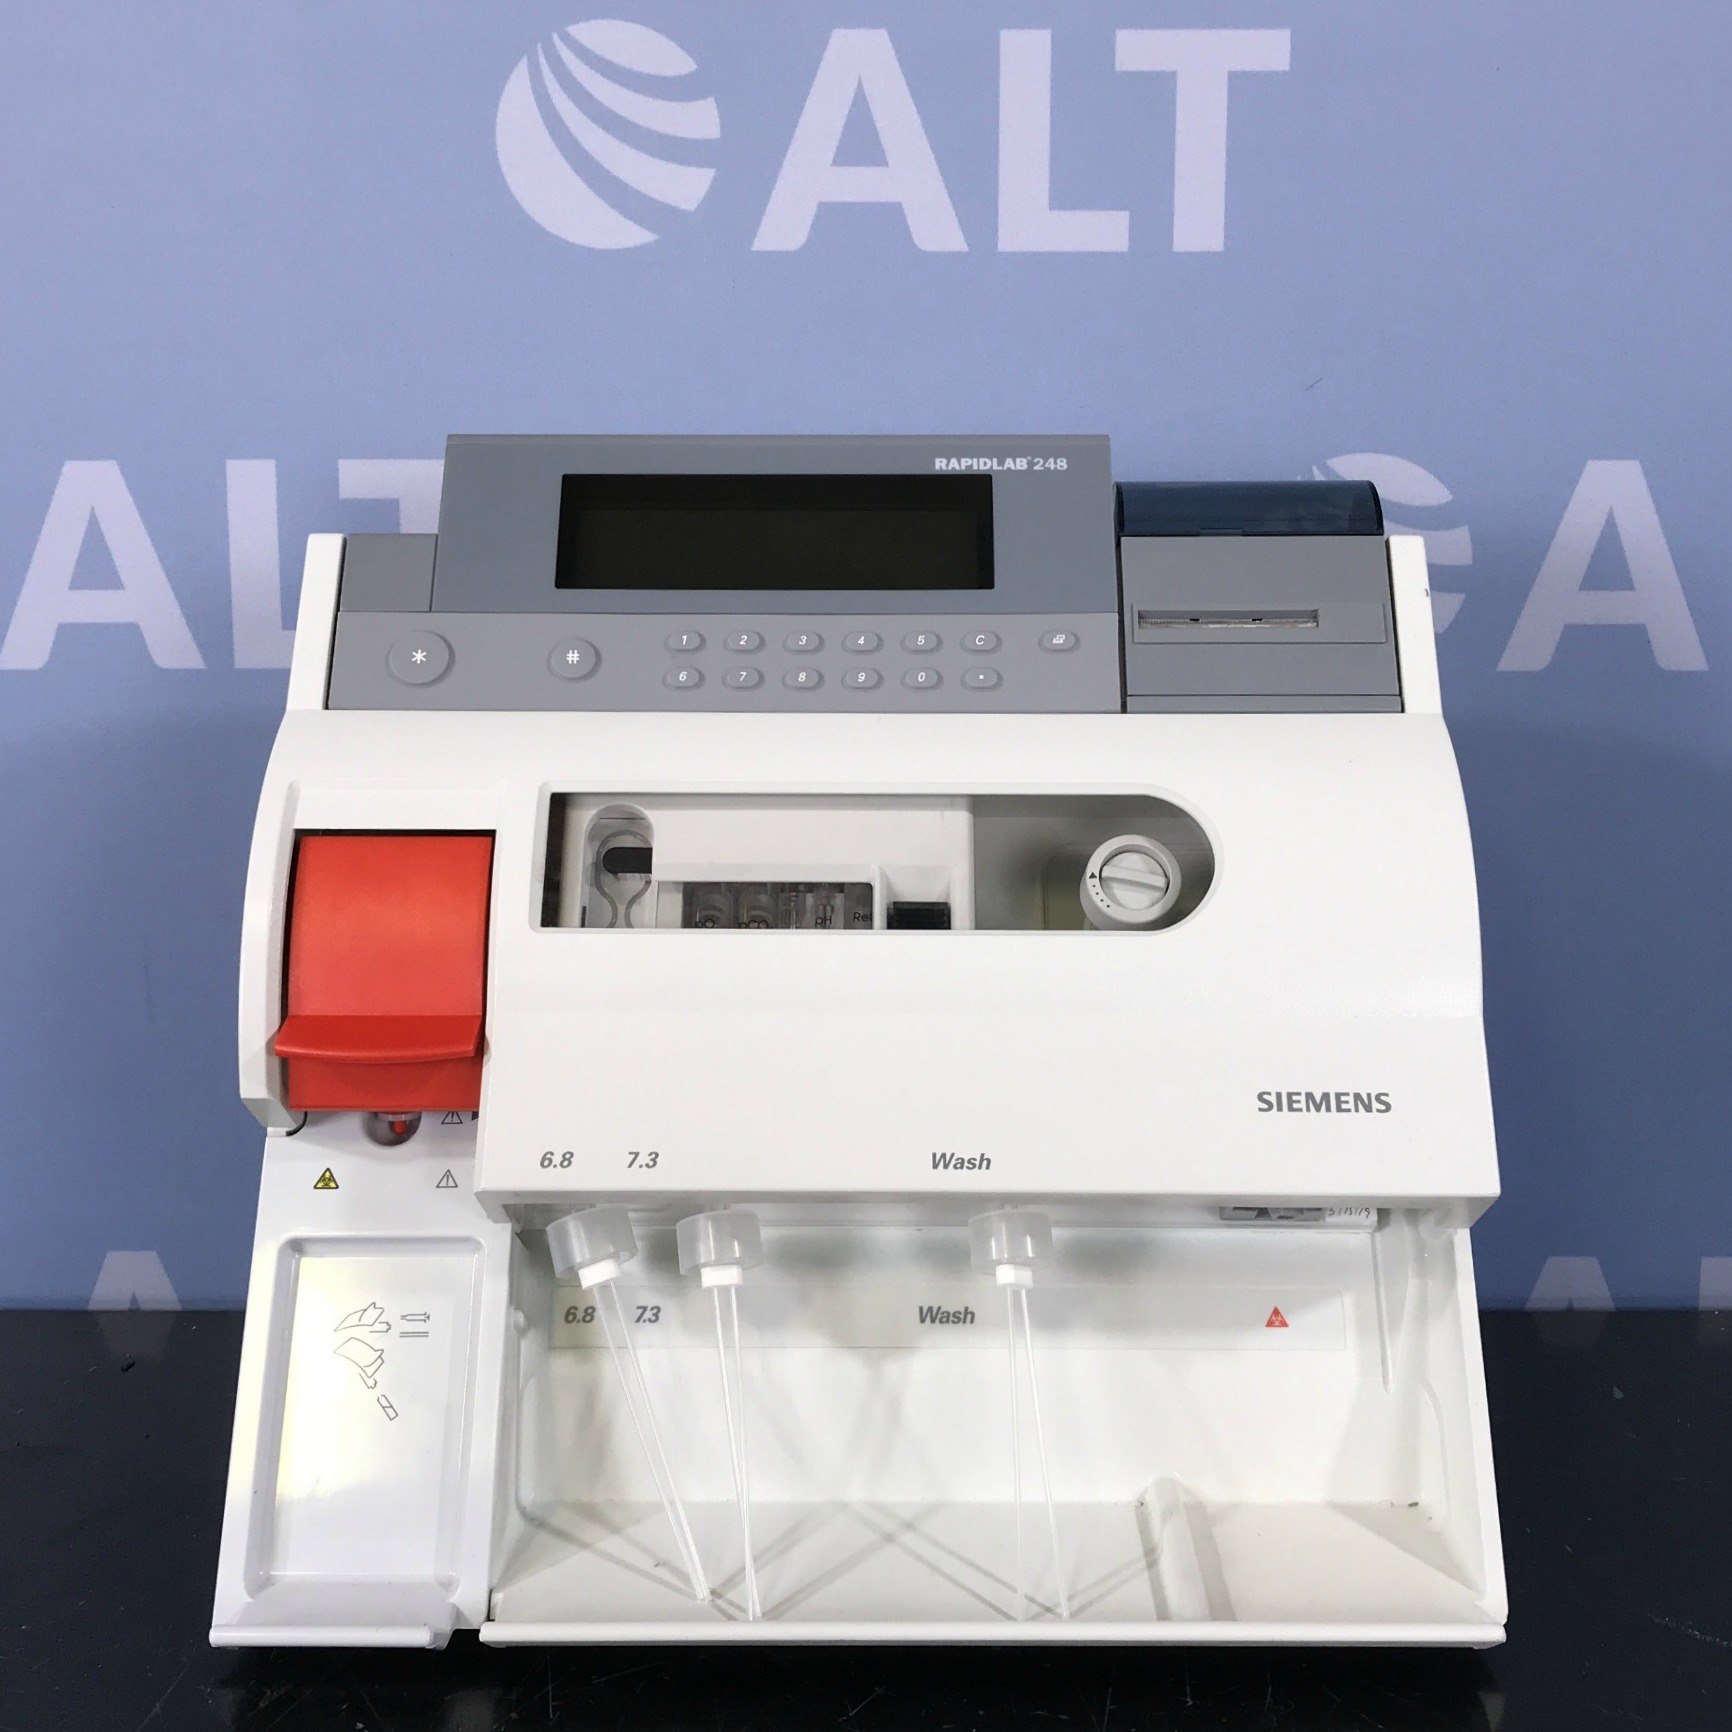 Siemens RAPIDLab 248 Model 240 pH/Blood Gas Analyzer Image